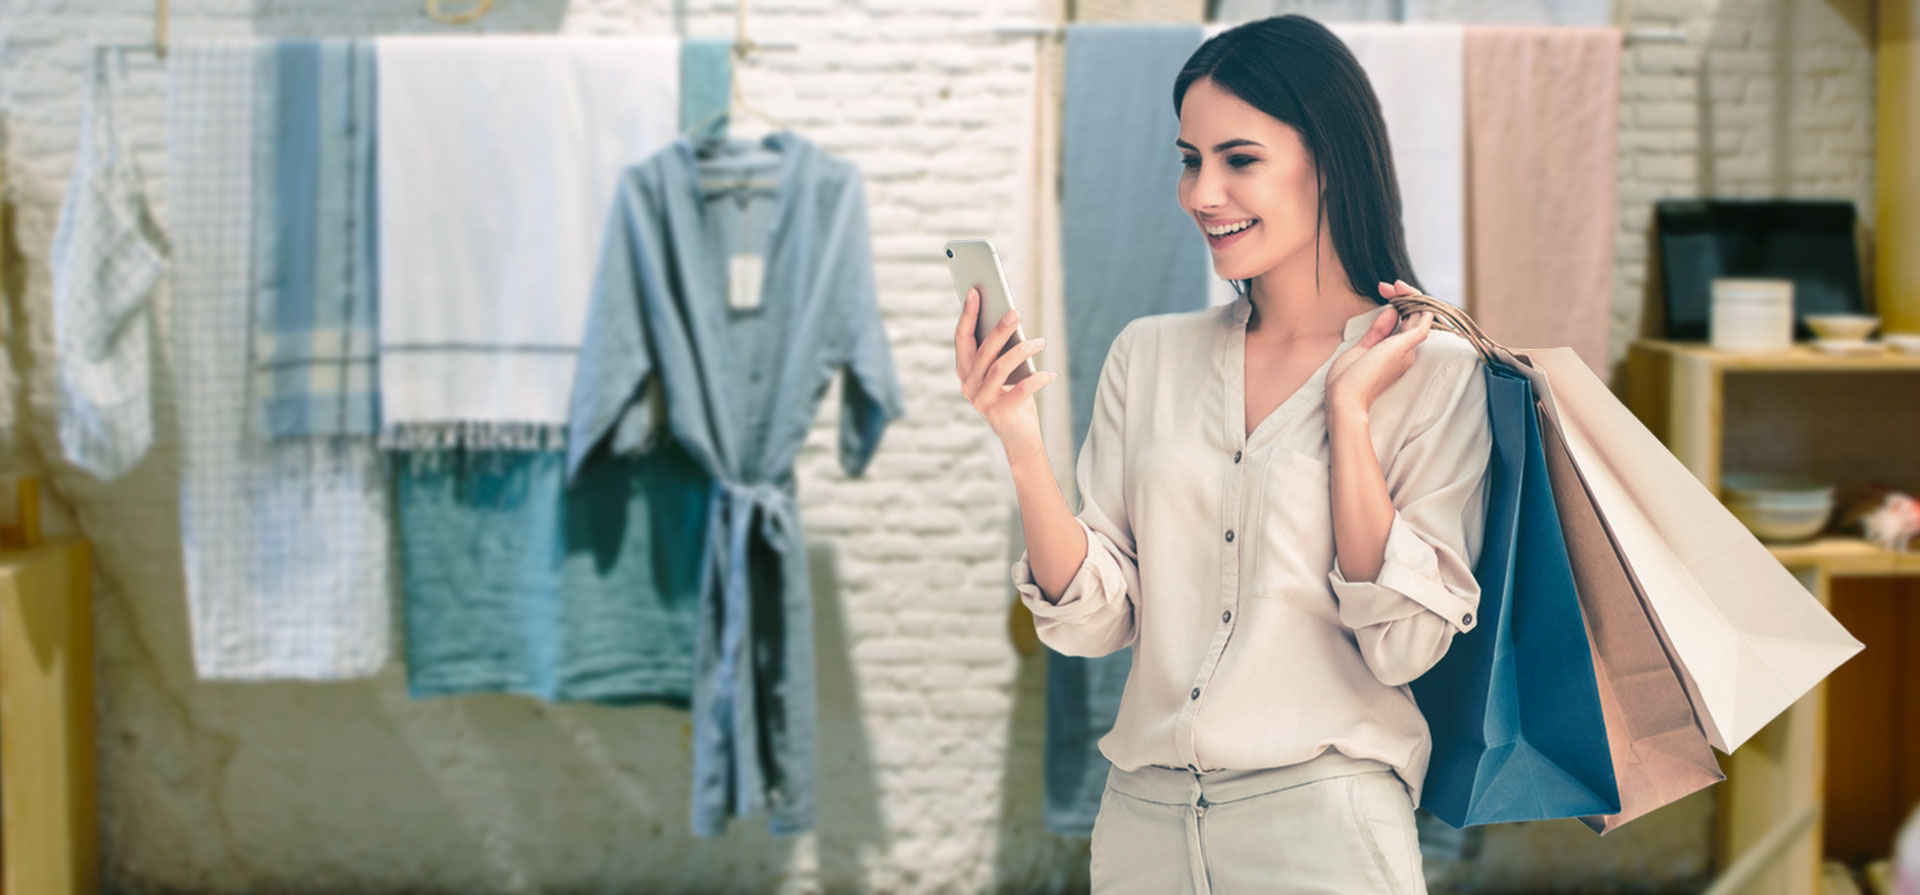 How Data Intelligence Can Help Increase Retail Foot Traffic